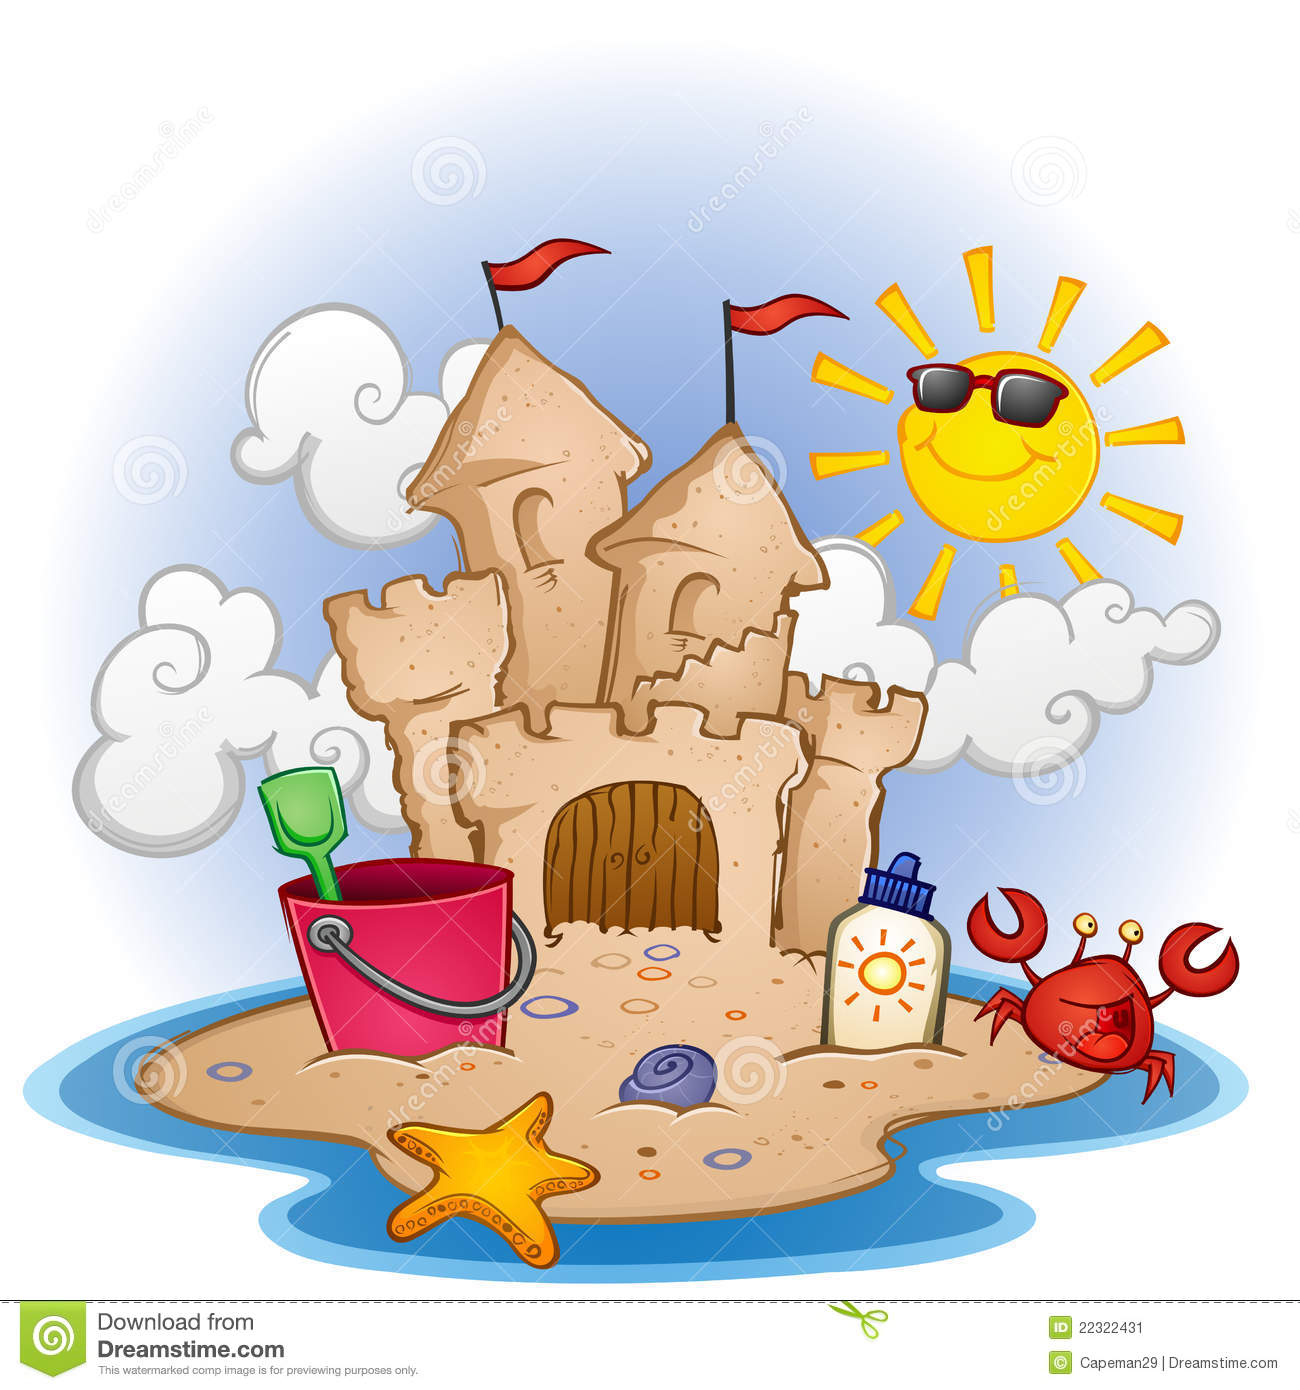 Clip Art Sandcastle Clipart sandcastle clipart kid beach scene with a toys and few fun characters